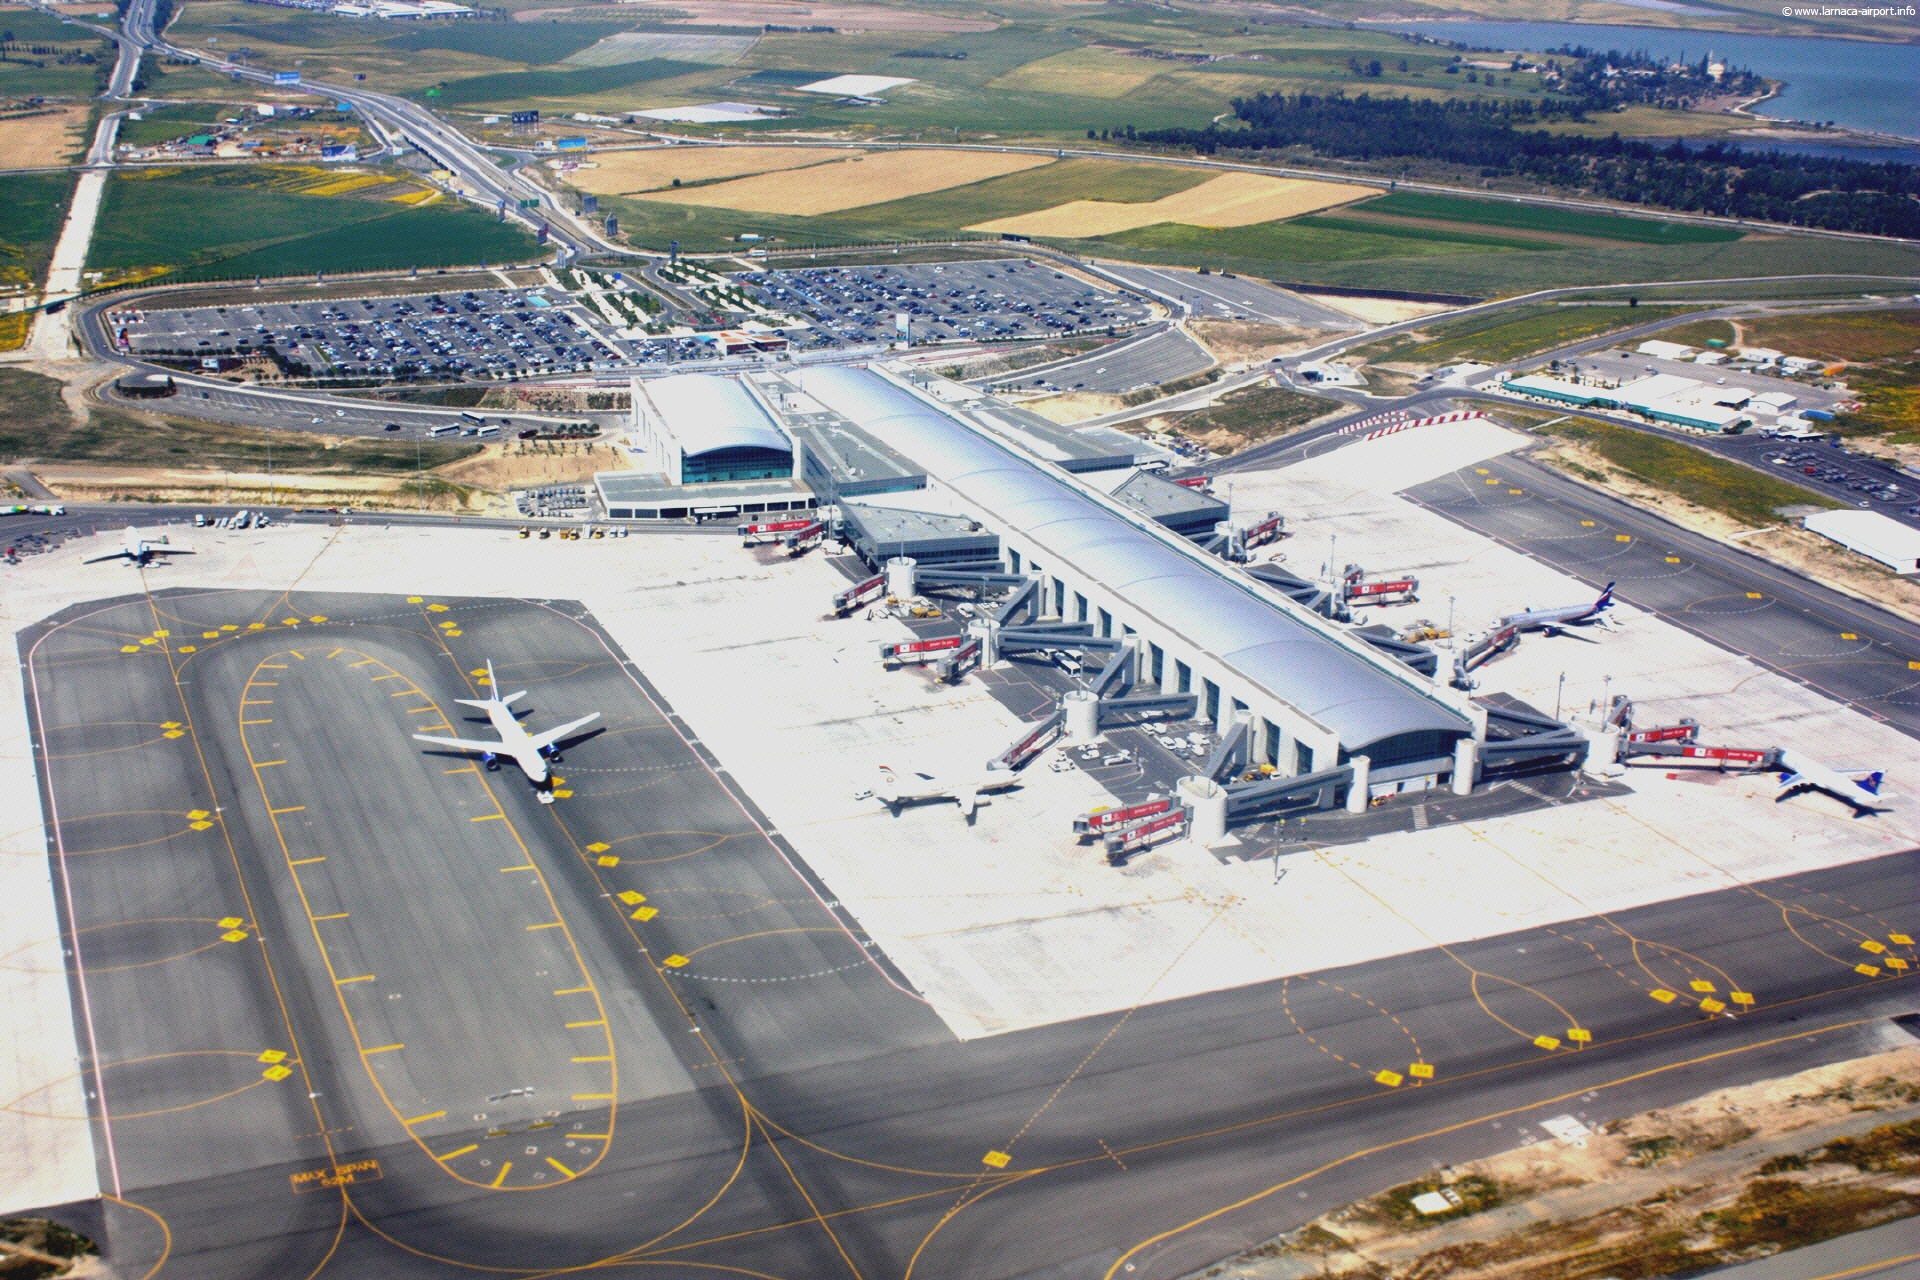 Airport at Bird Eye Panorama 826.27 Kb